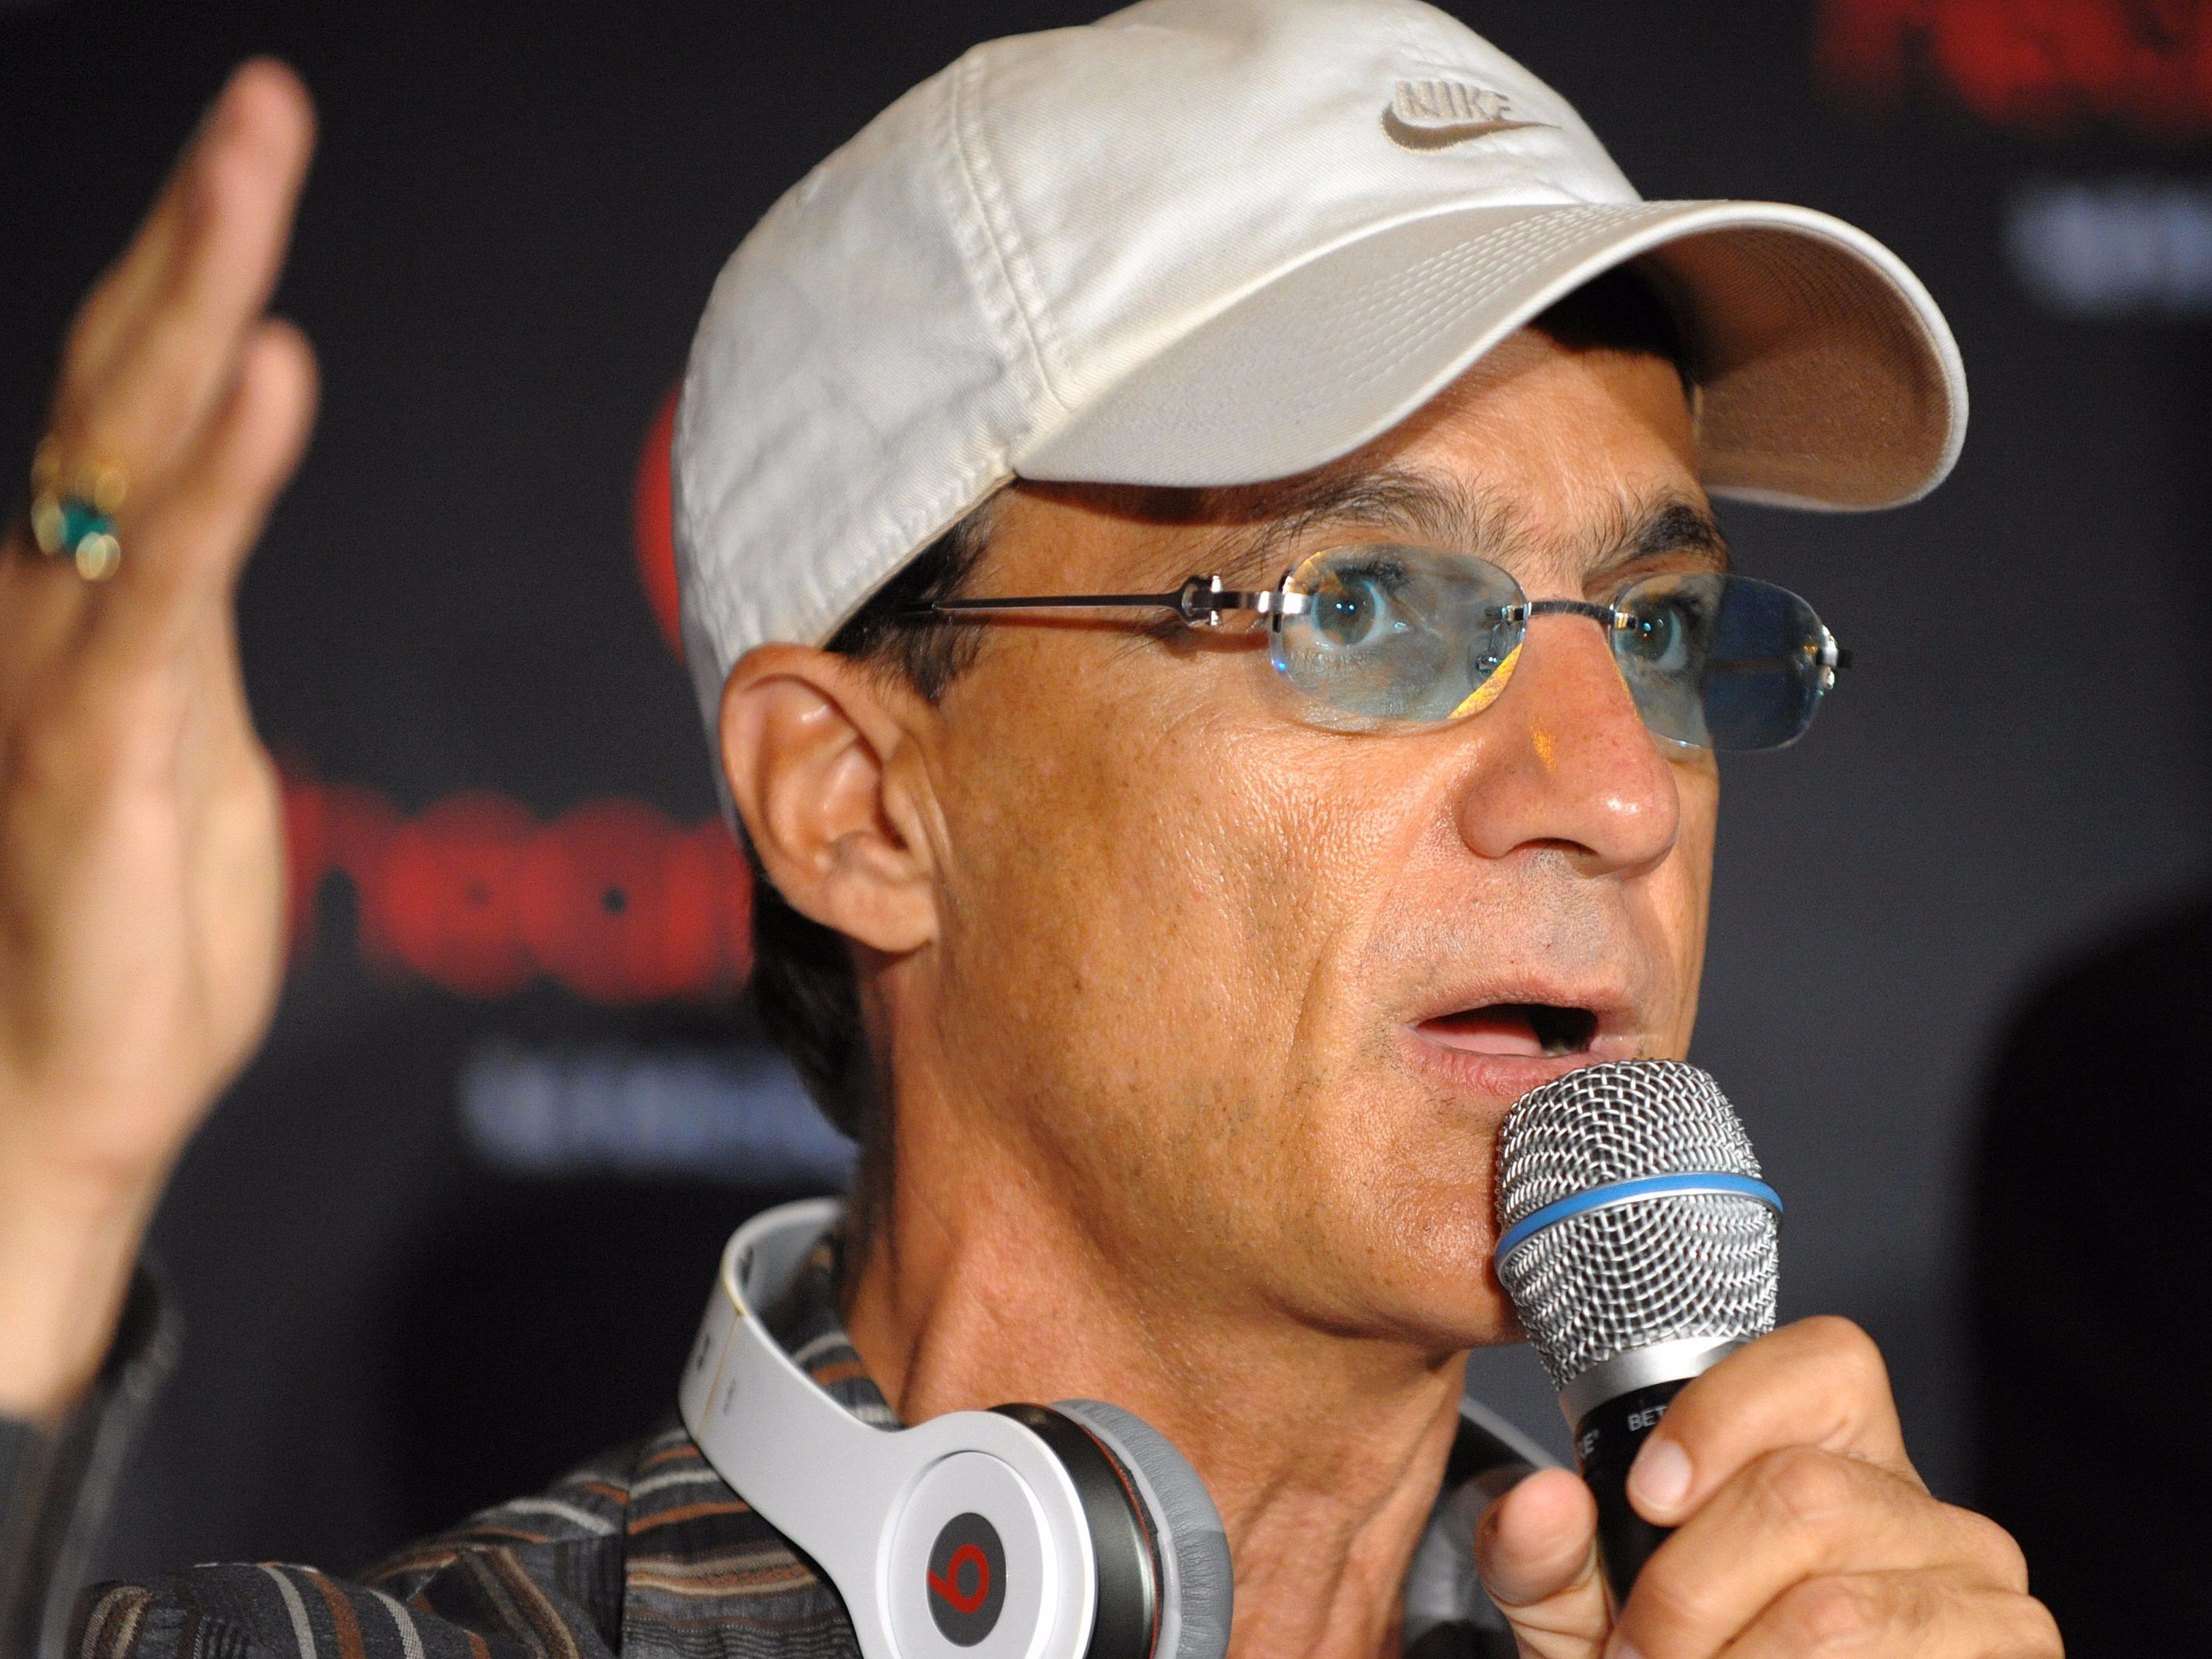 Jimmy Iovine: Apple brought in '300 lunatics' when it bought Beats